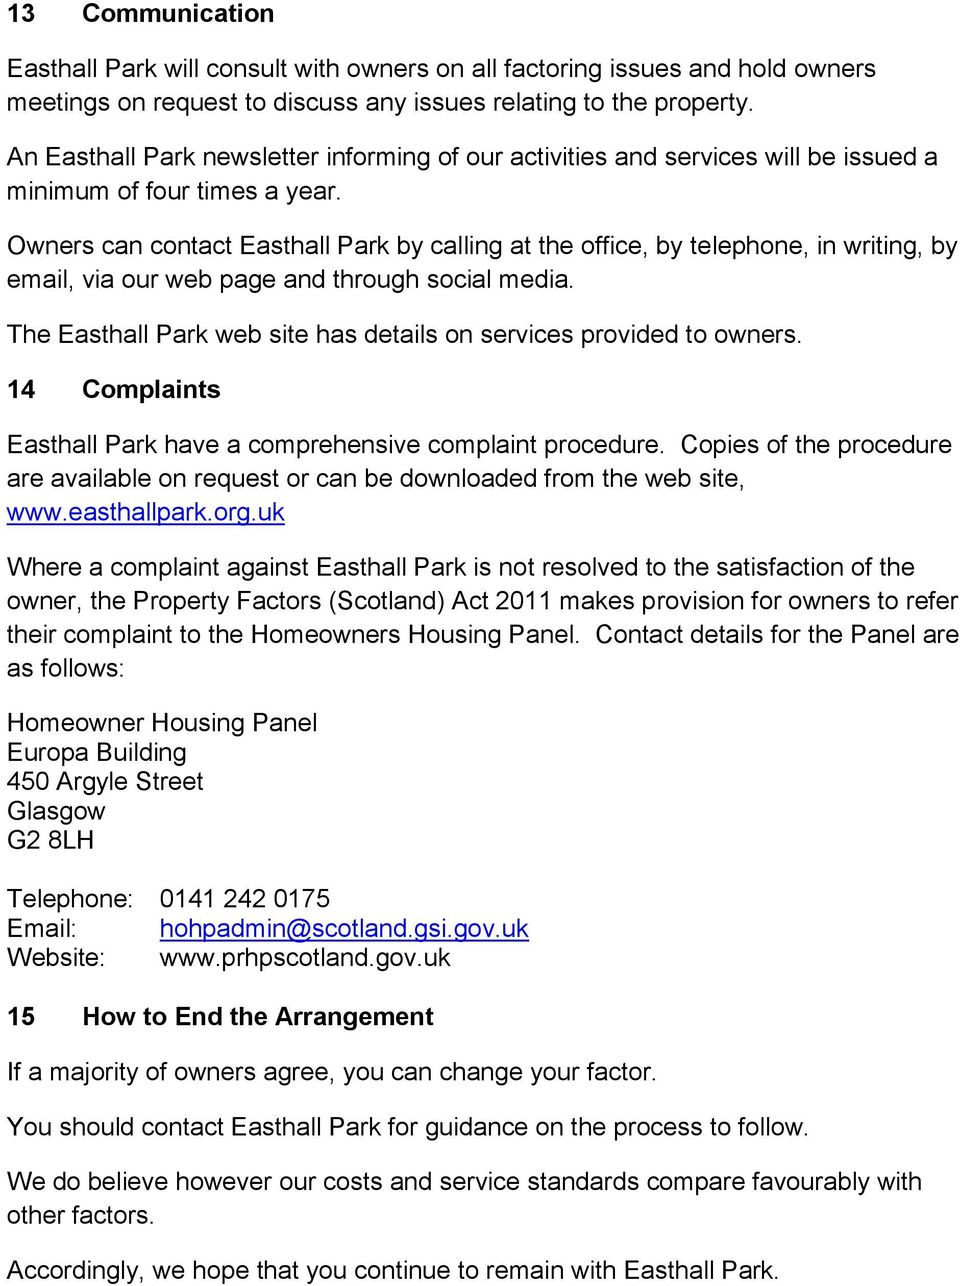 Owners can contact Easthall Park by calling at the office, by telephone, in writing, by email, via our web page and through social media.